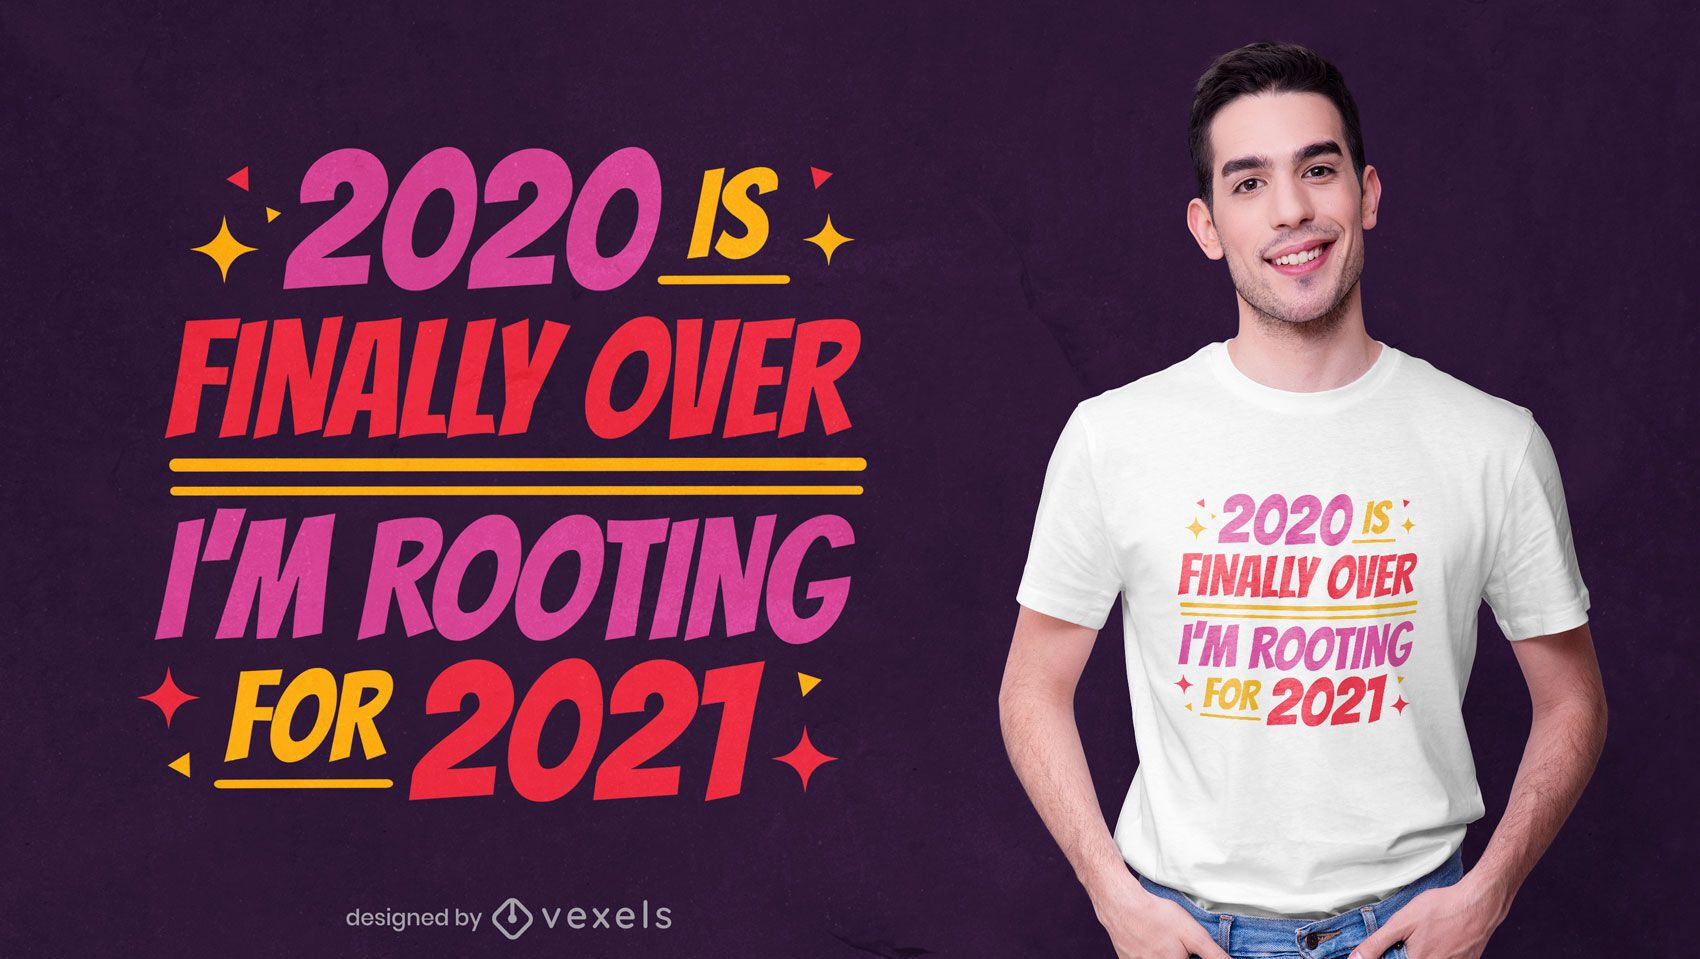 Rooting for 2021 t-shirt design